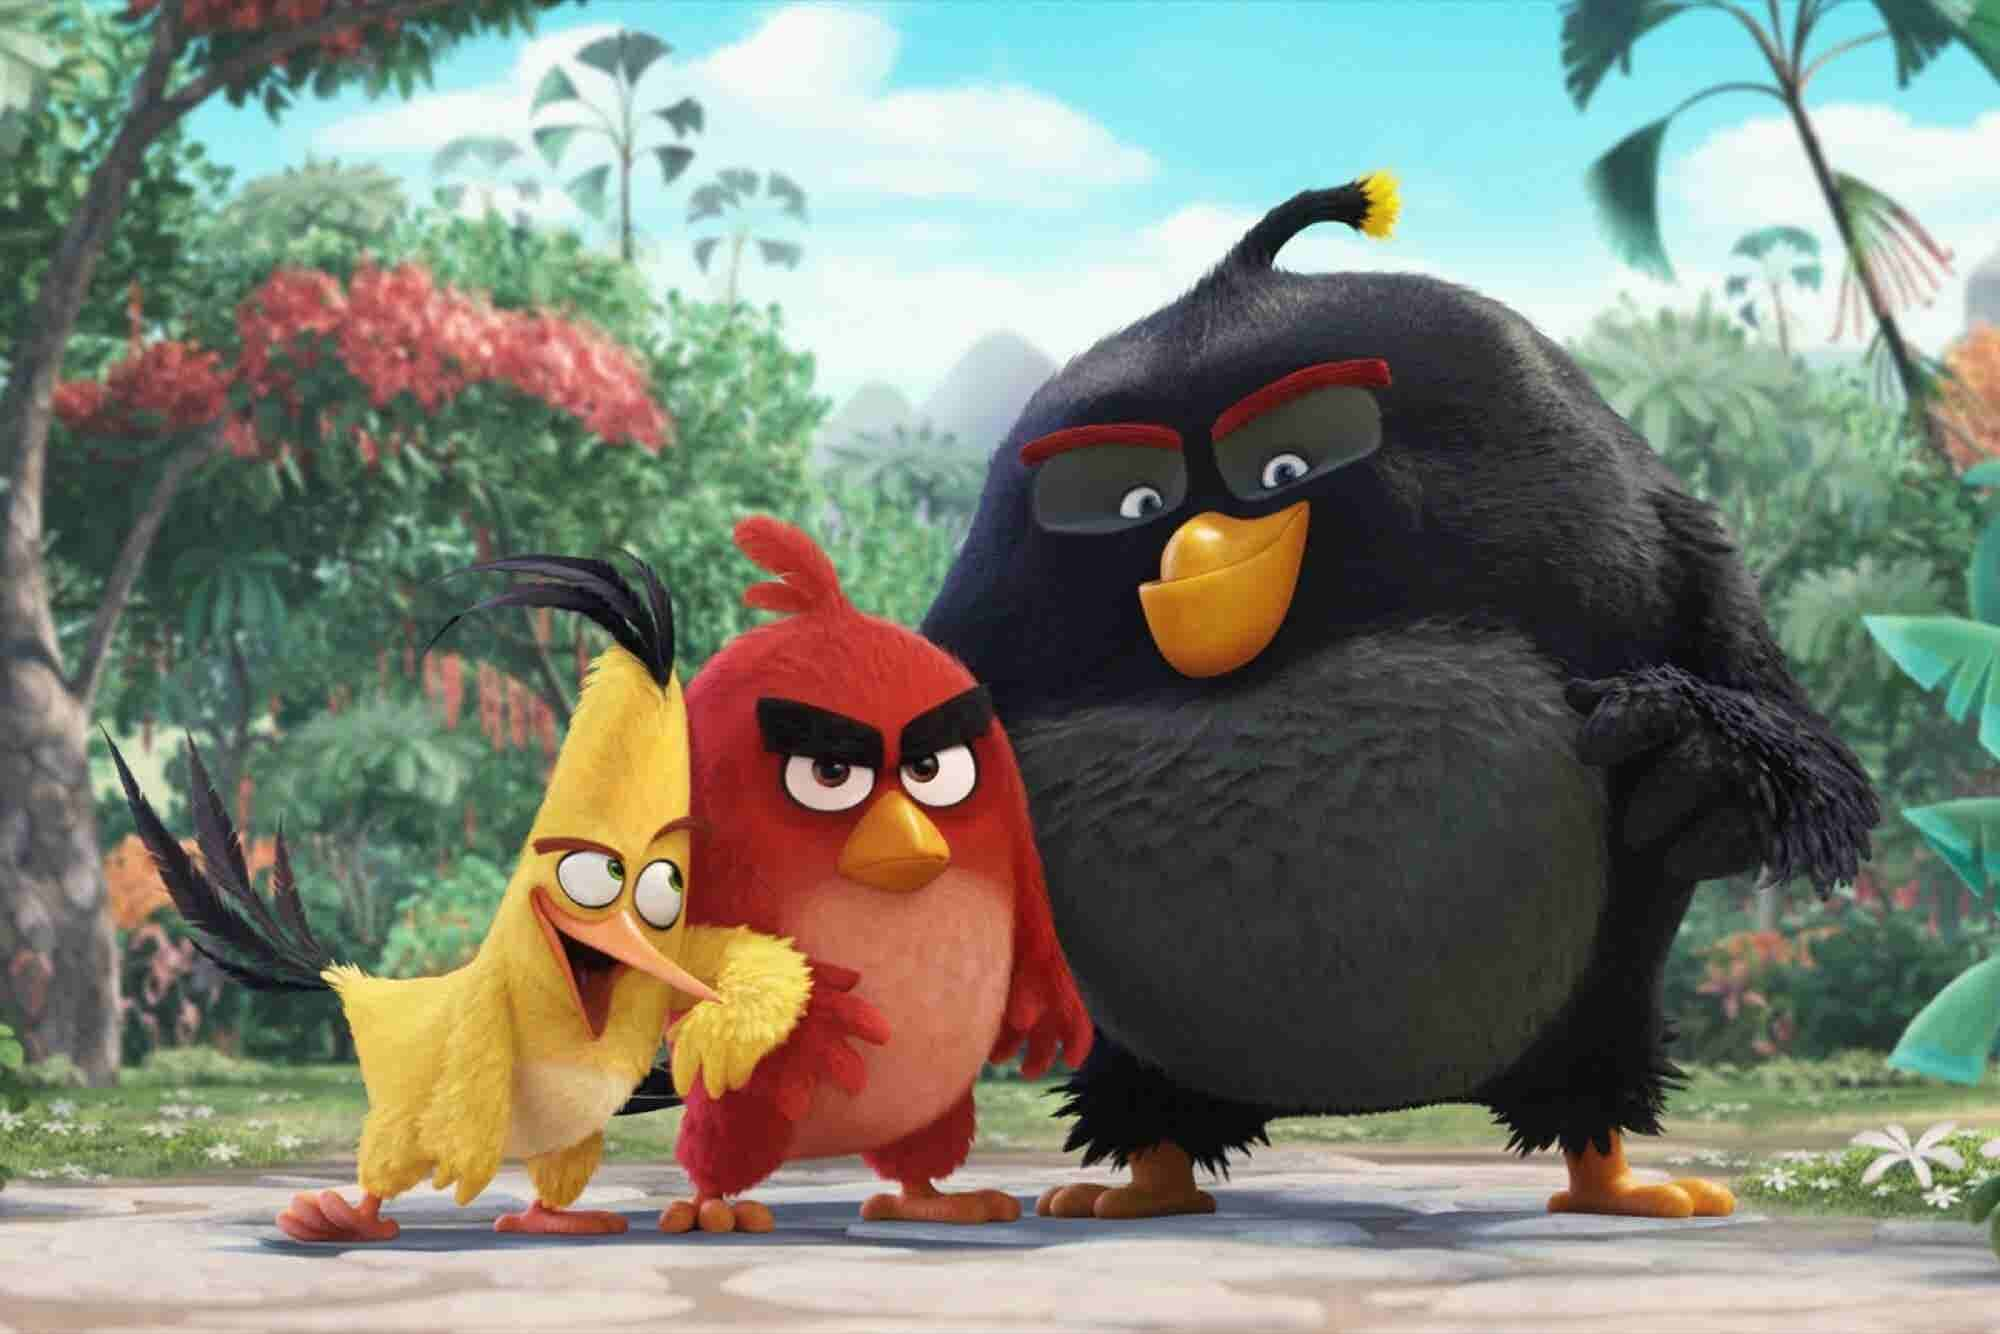 The Maker of Angry Birds Is Planning to Slash Up to 39 Percent of Its Workforce